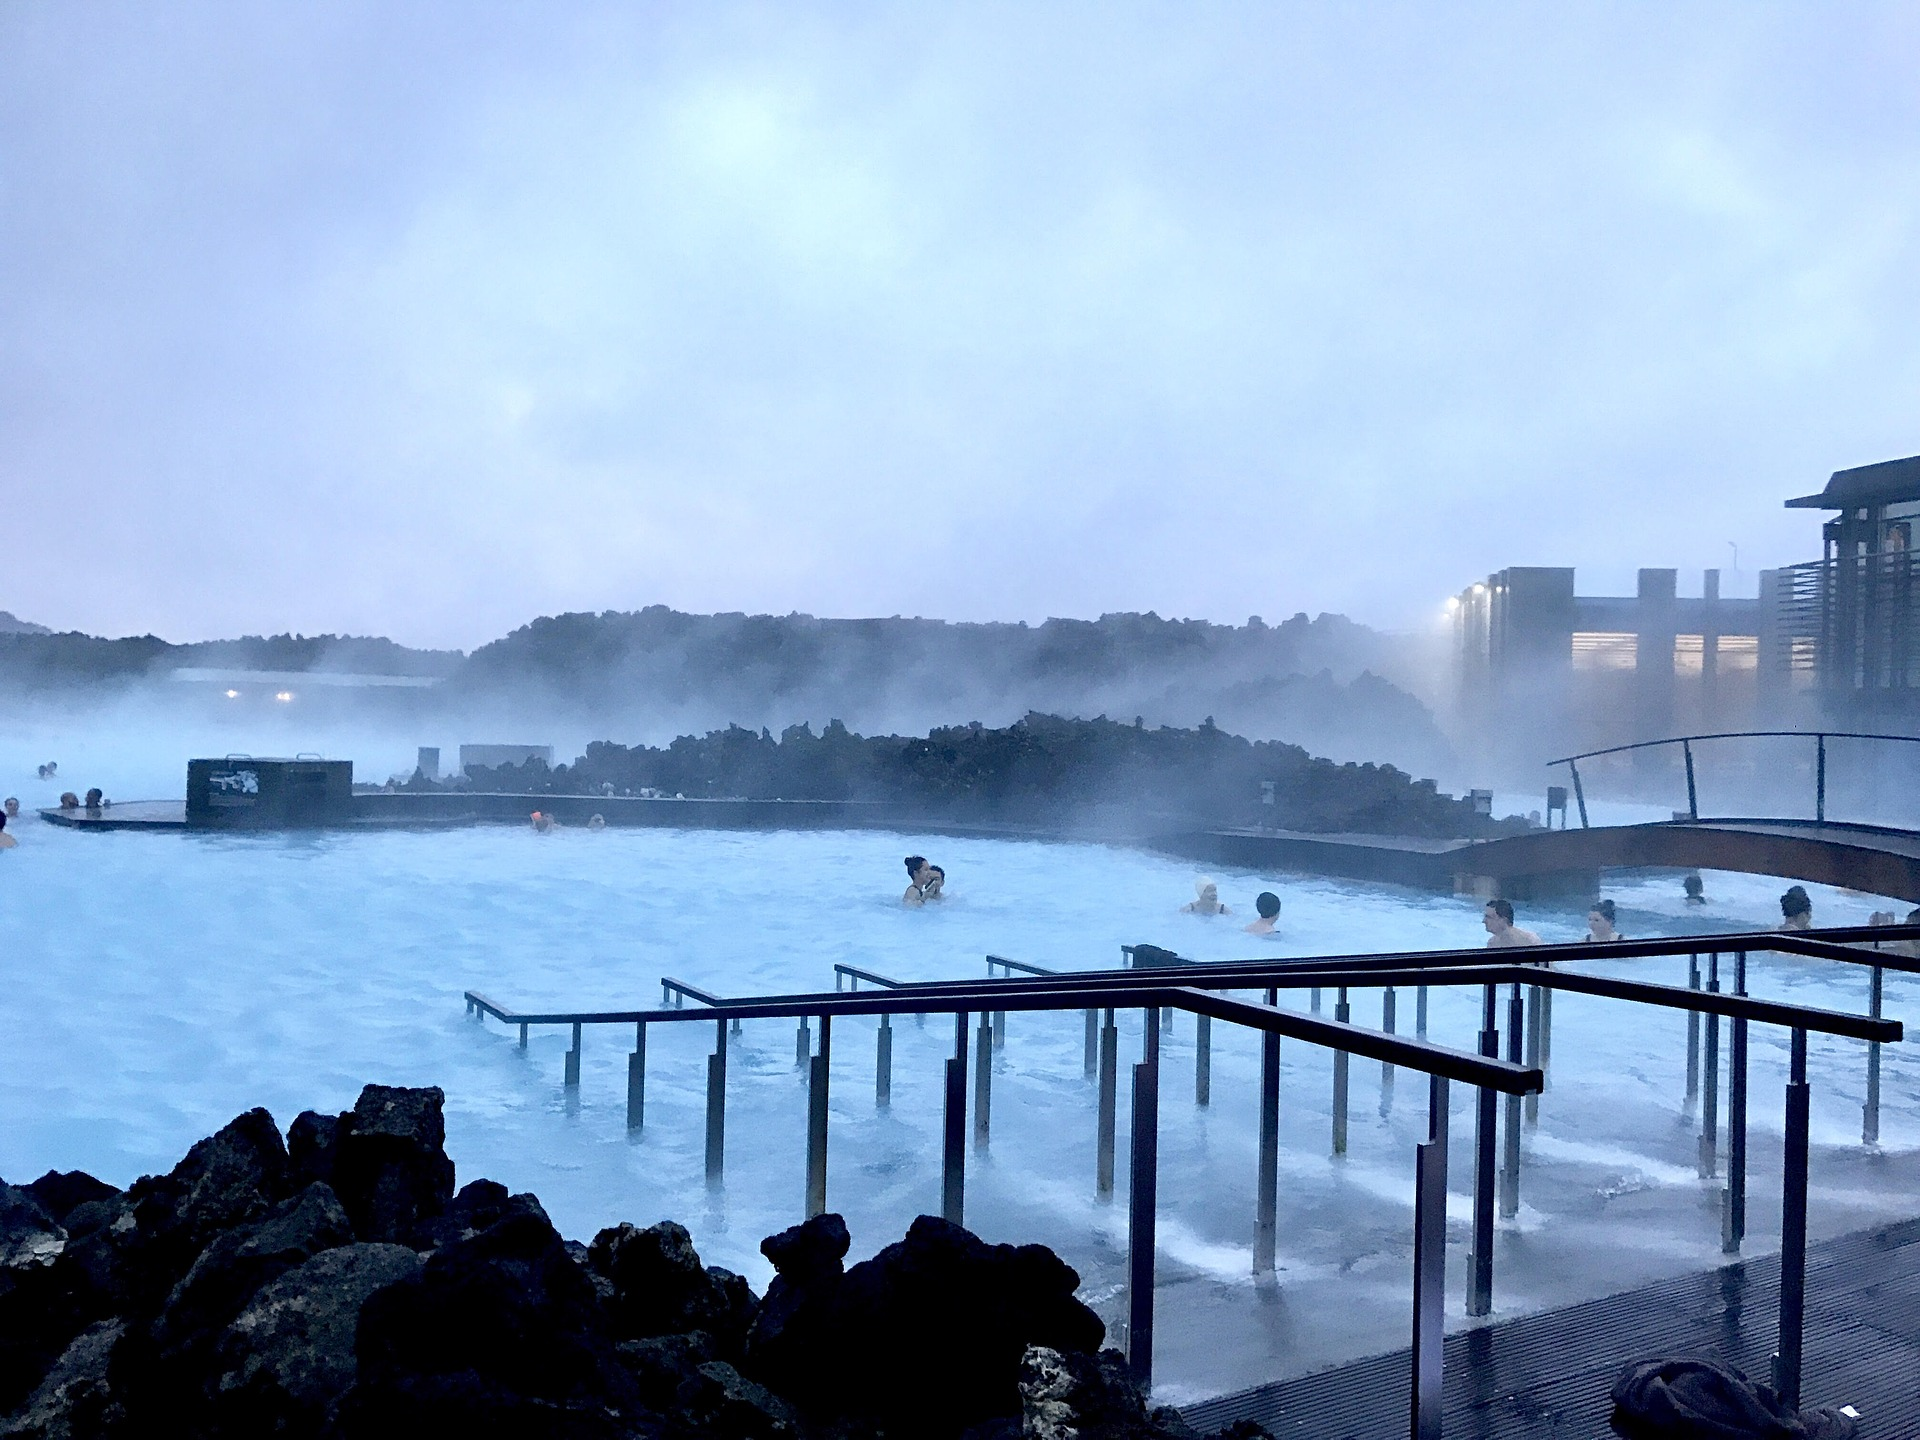 blue lagoon in iceland, with stairs to go to the lagoon, people are bathing in hot waters